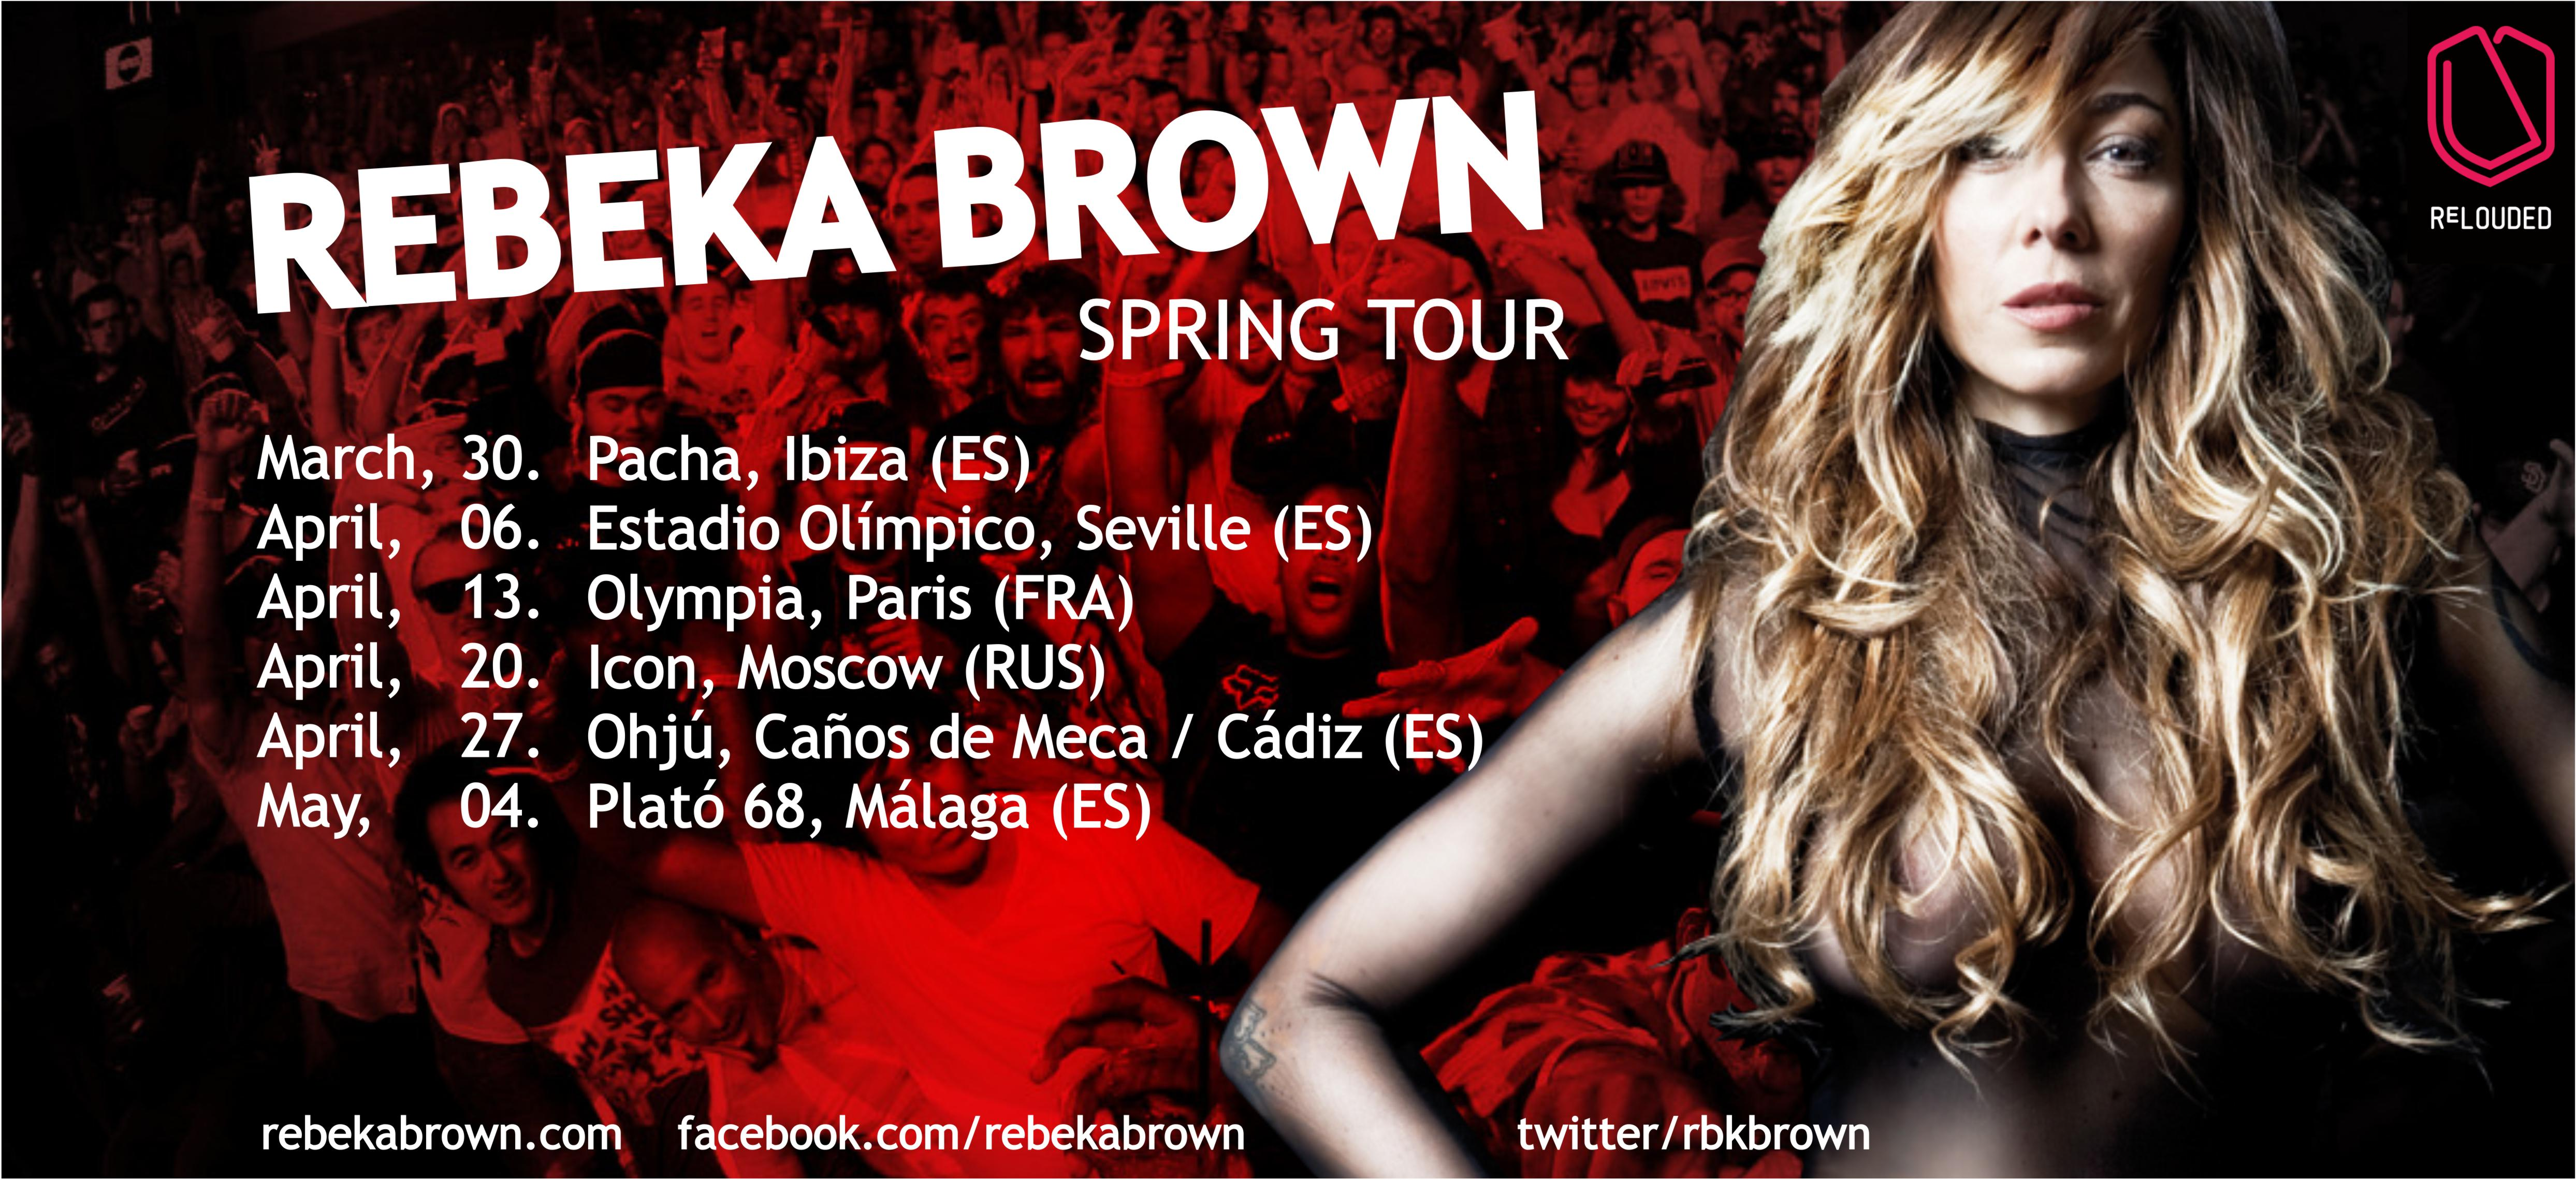 Rebeka_Brown_Spring_Tour_2013